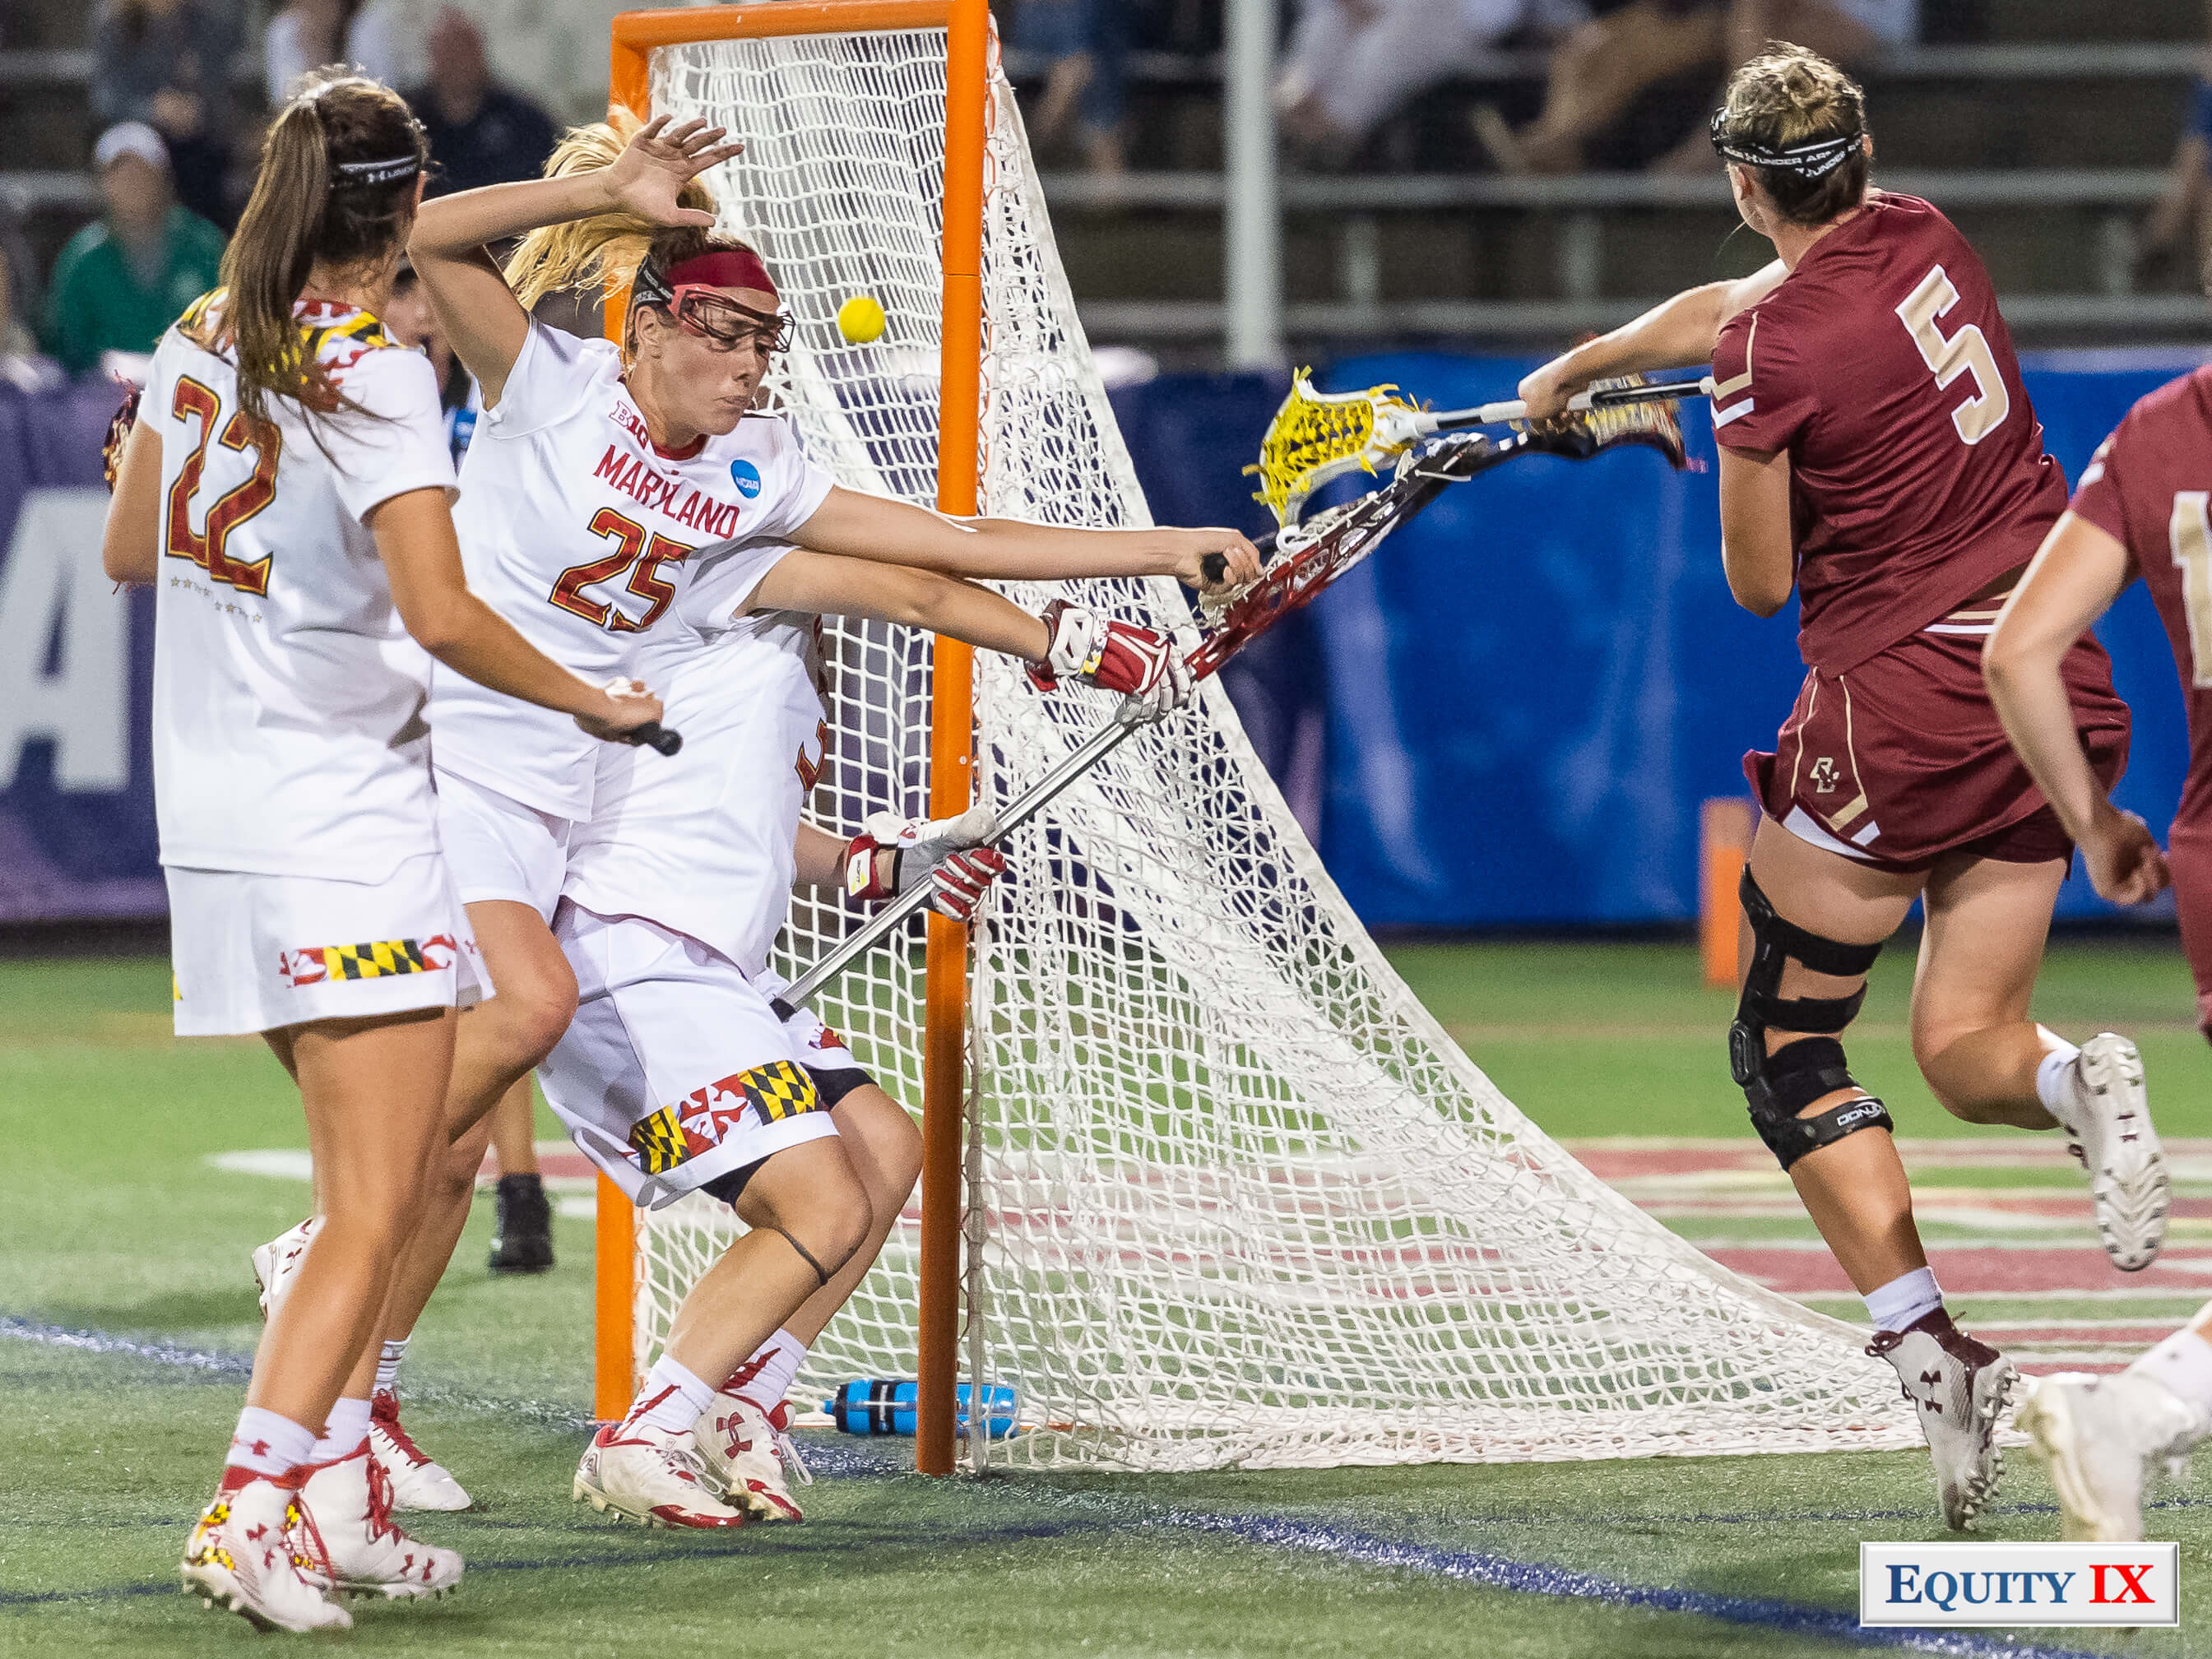 """#5 Tess Chandler (Boston College) at 6'0"""" wearing a knee brace on her left shoots the ball right handed from behind Maryland's lacrosse goal - Maryland goalie Megan Taylor is ducking in cage and #25 Maryland defense Lizzie Colson is diving across the goal to stop the ball with her eyes closed - 2018 NCAA Women's Lacrosse Final Four © Equity IX - SportsOgram - Leigh Ernst Friestedt"""